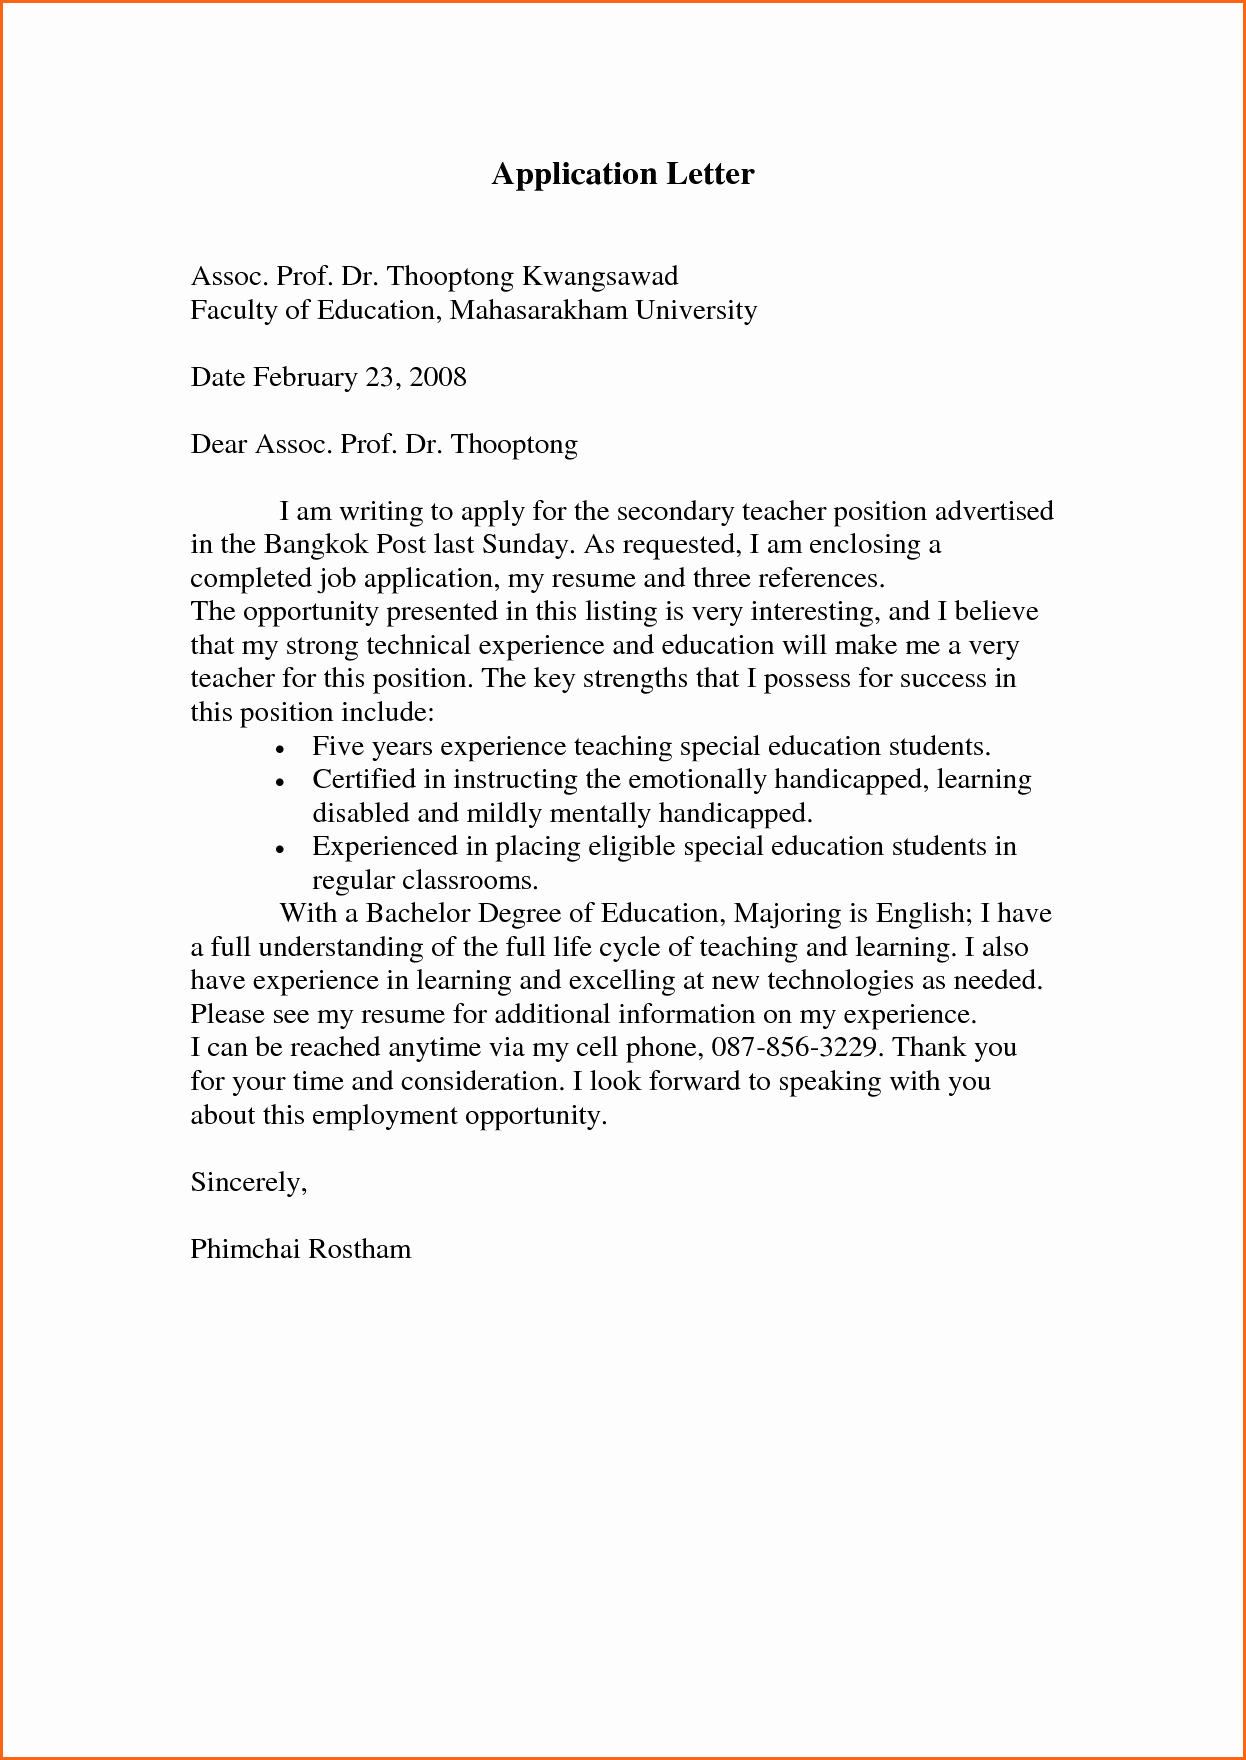 Sample Introduction Letter for A Job Introduction Letter